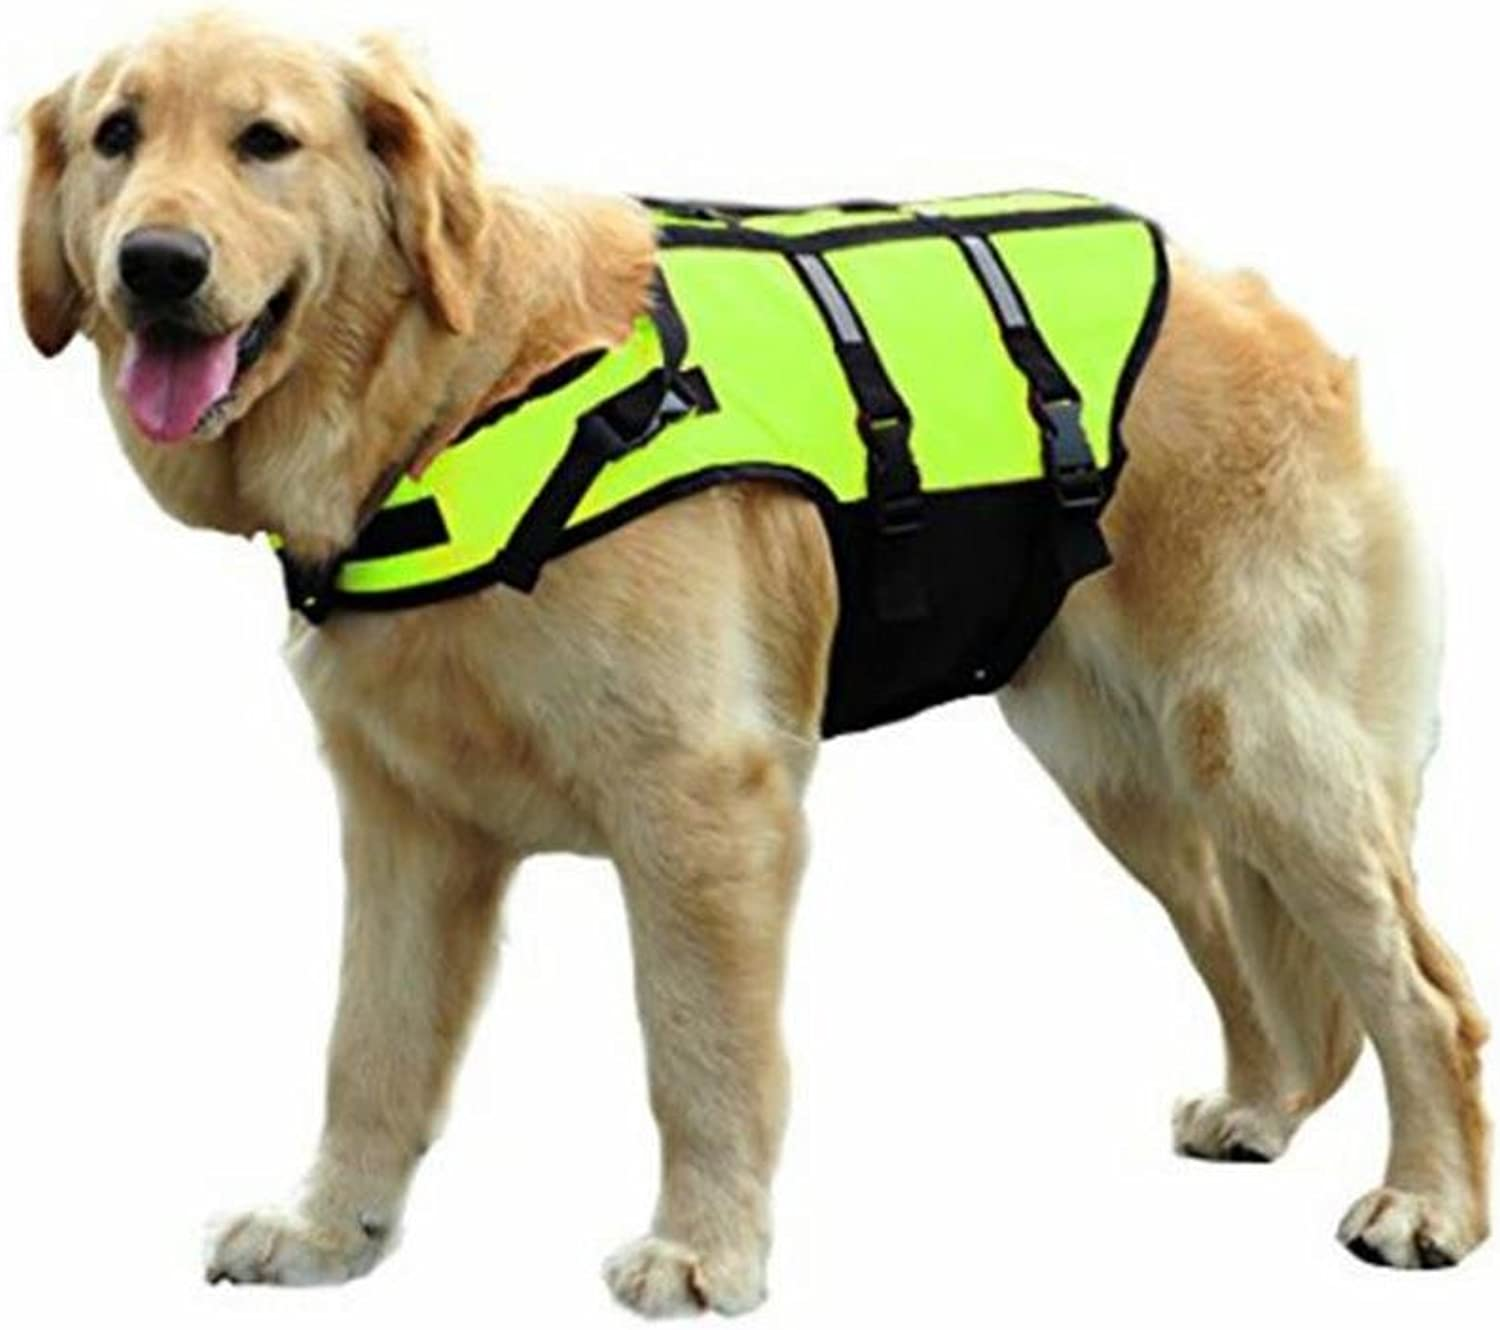 PetBoBo Dog Life Jacket for Small Medium Large Dogs, Adjustable Pet Life Preserver Safety Dog Swimming Pool Vest, Novice Swimmer Life Jacket for Pets, Water Safety at The Pool,Cosplay